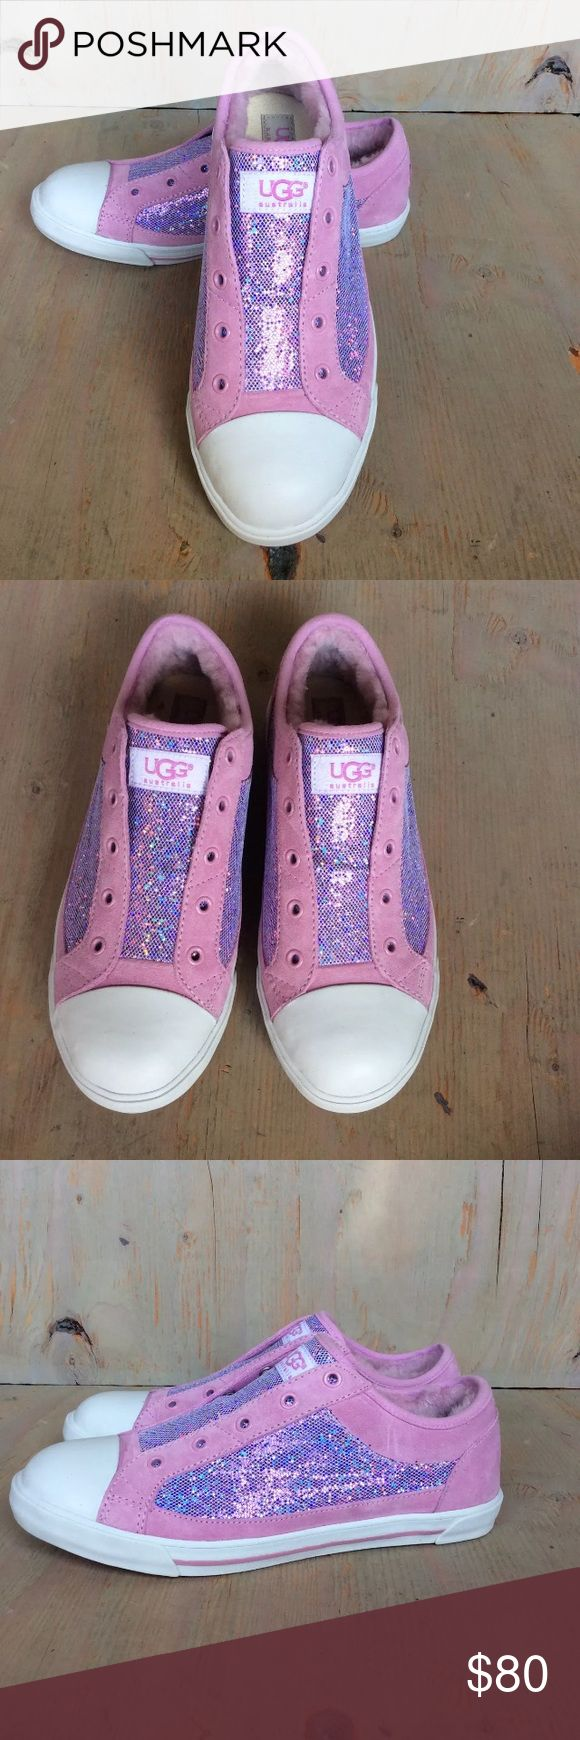 Ugg pink sneakers Laela Mermaid 6 youth 7.5 Ugg sneakers pink laela mermaid sparkle size 6 youth which fits a women's 7.5. Brand new never worn UGG Shoes